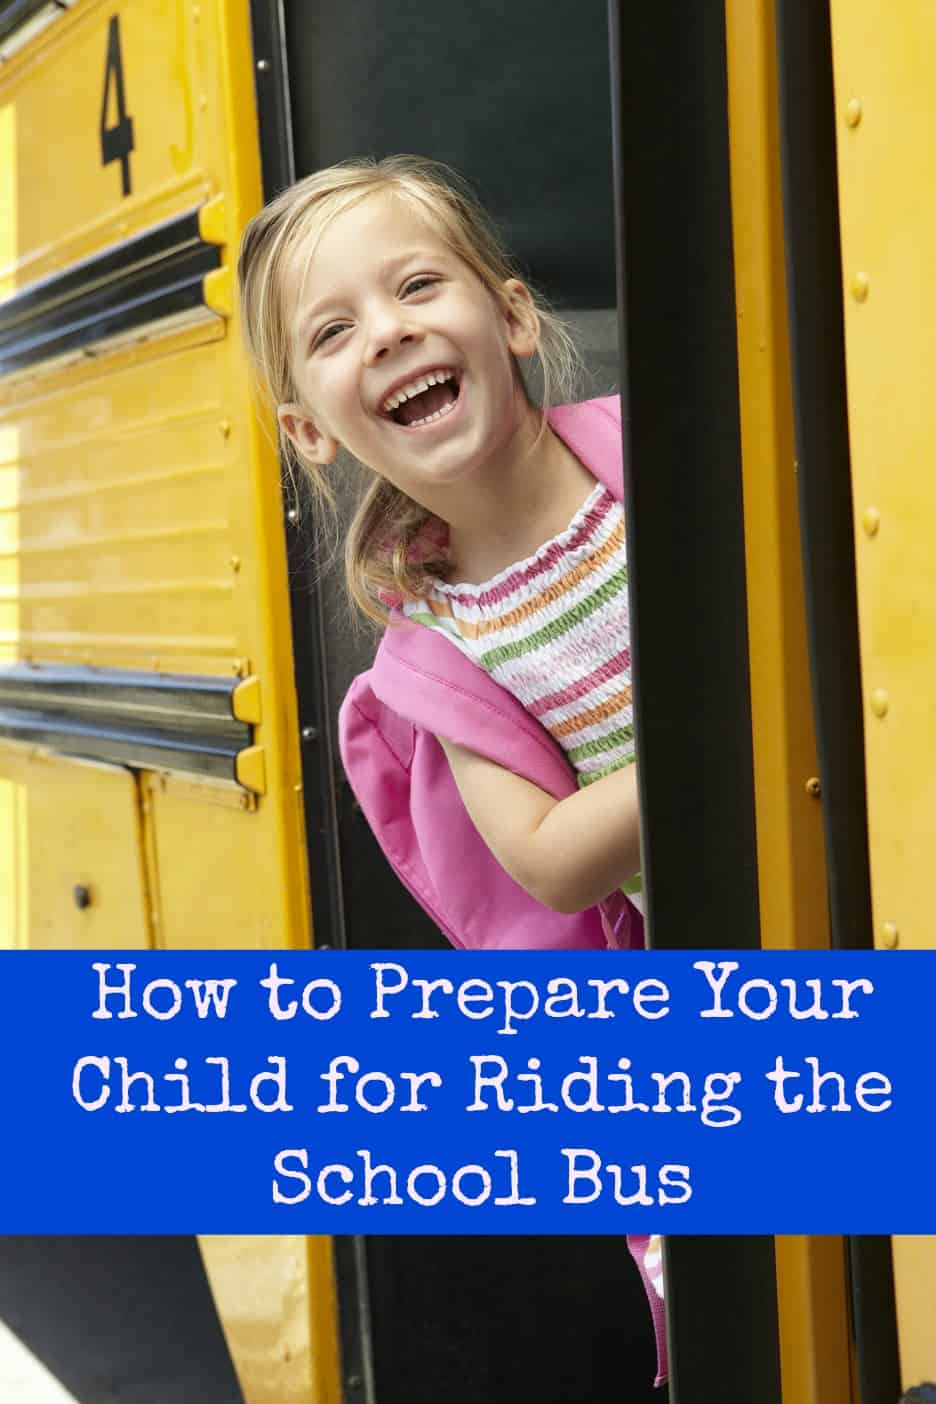 How to Prepare Your Child for Riding the School Bus